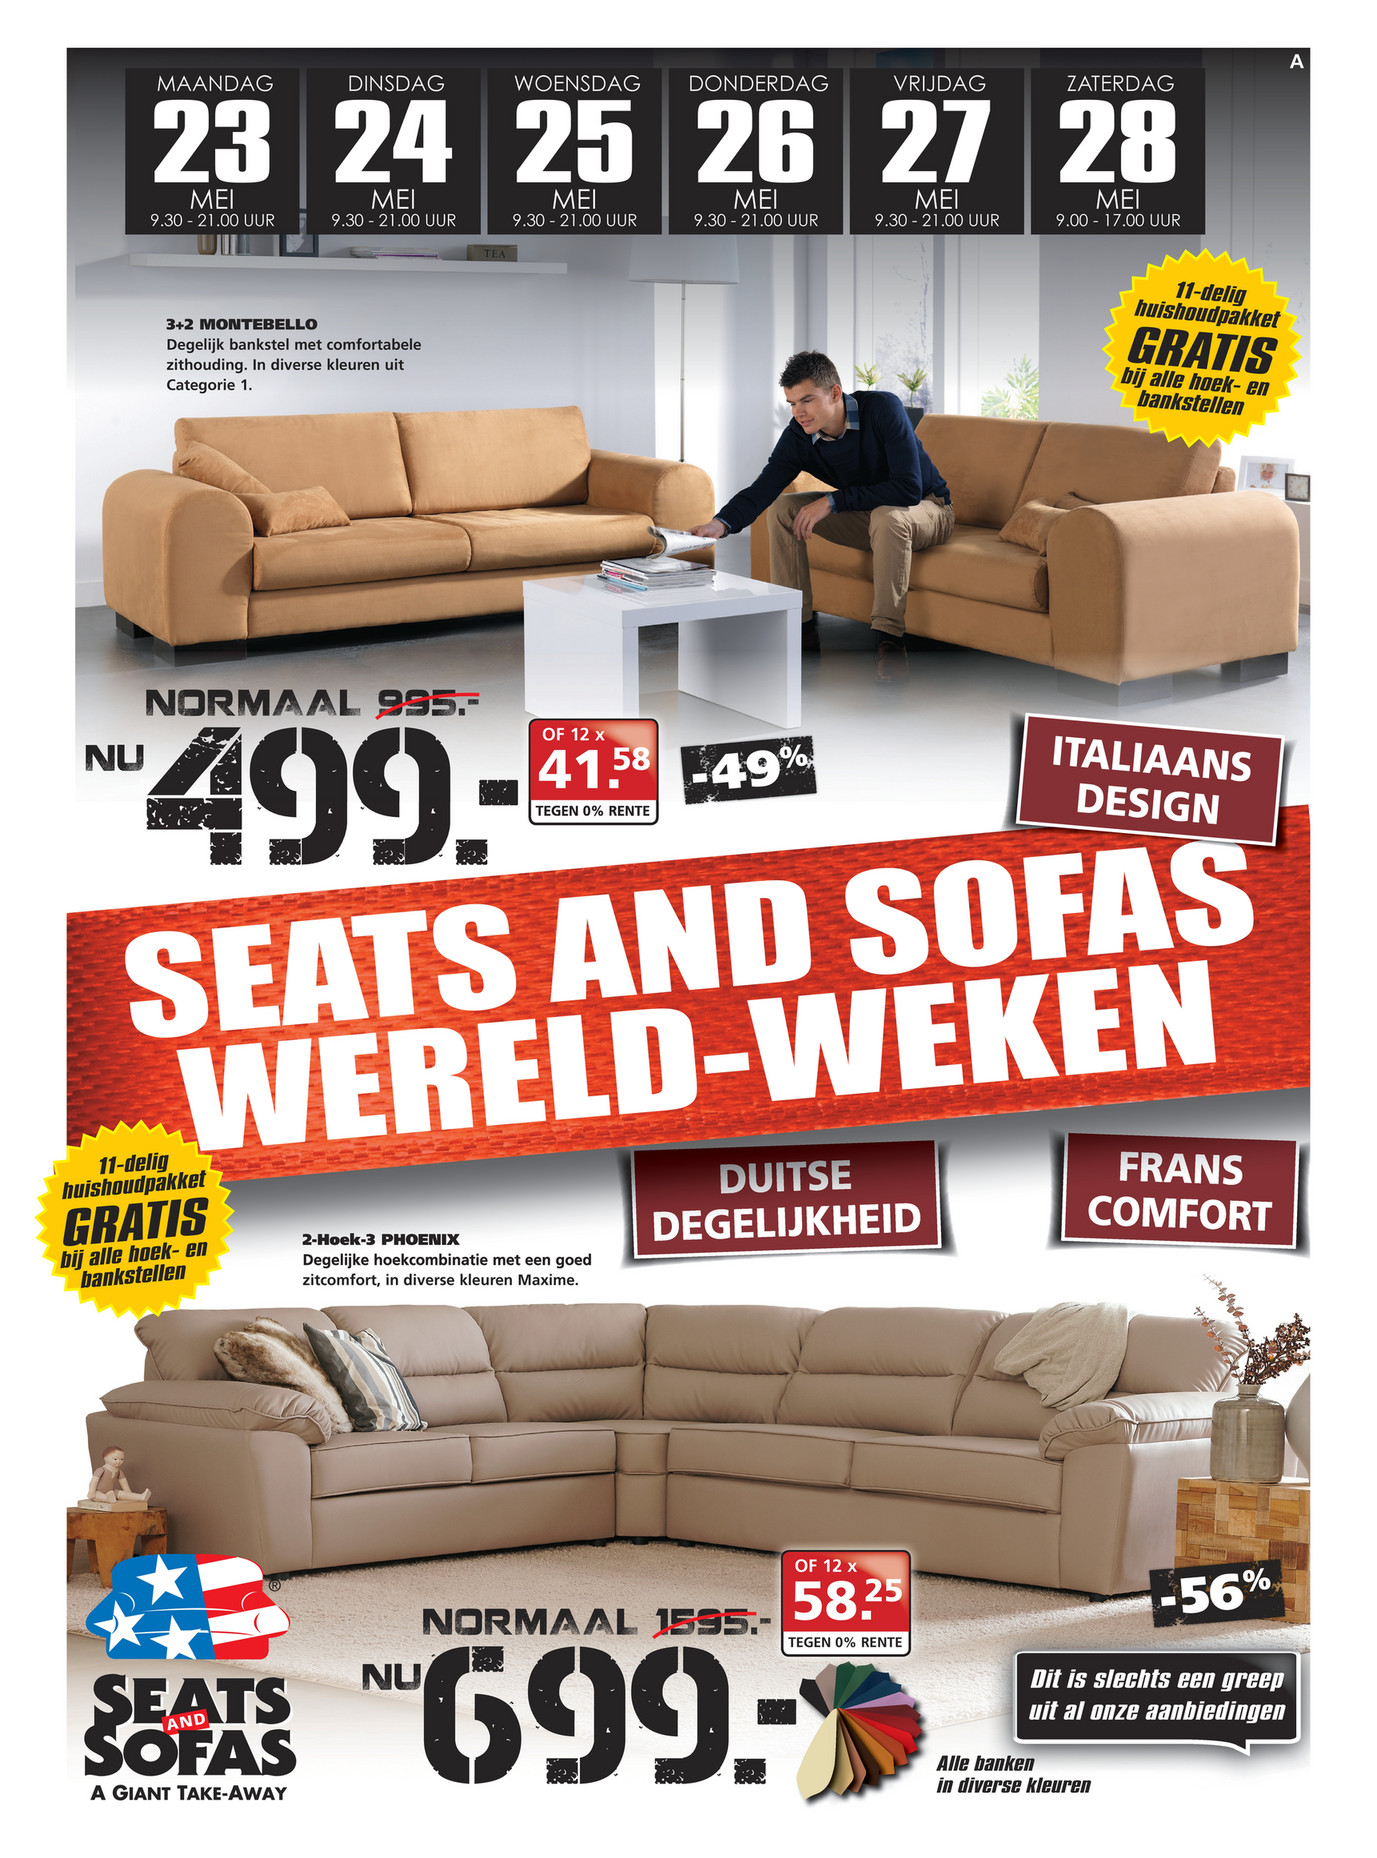 Seats En Sofa Heerlen Folderaanbiedingen Seats And Sofas Folder 23 Tm 28 Mei 2016